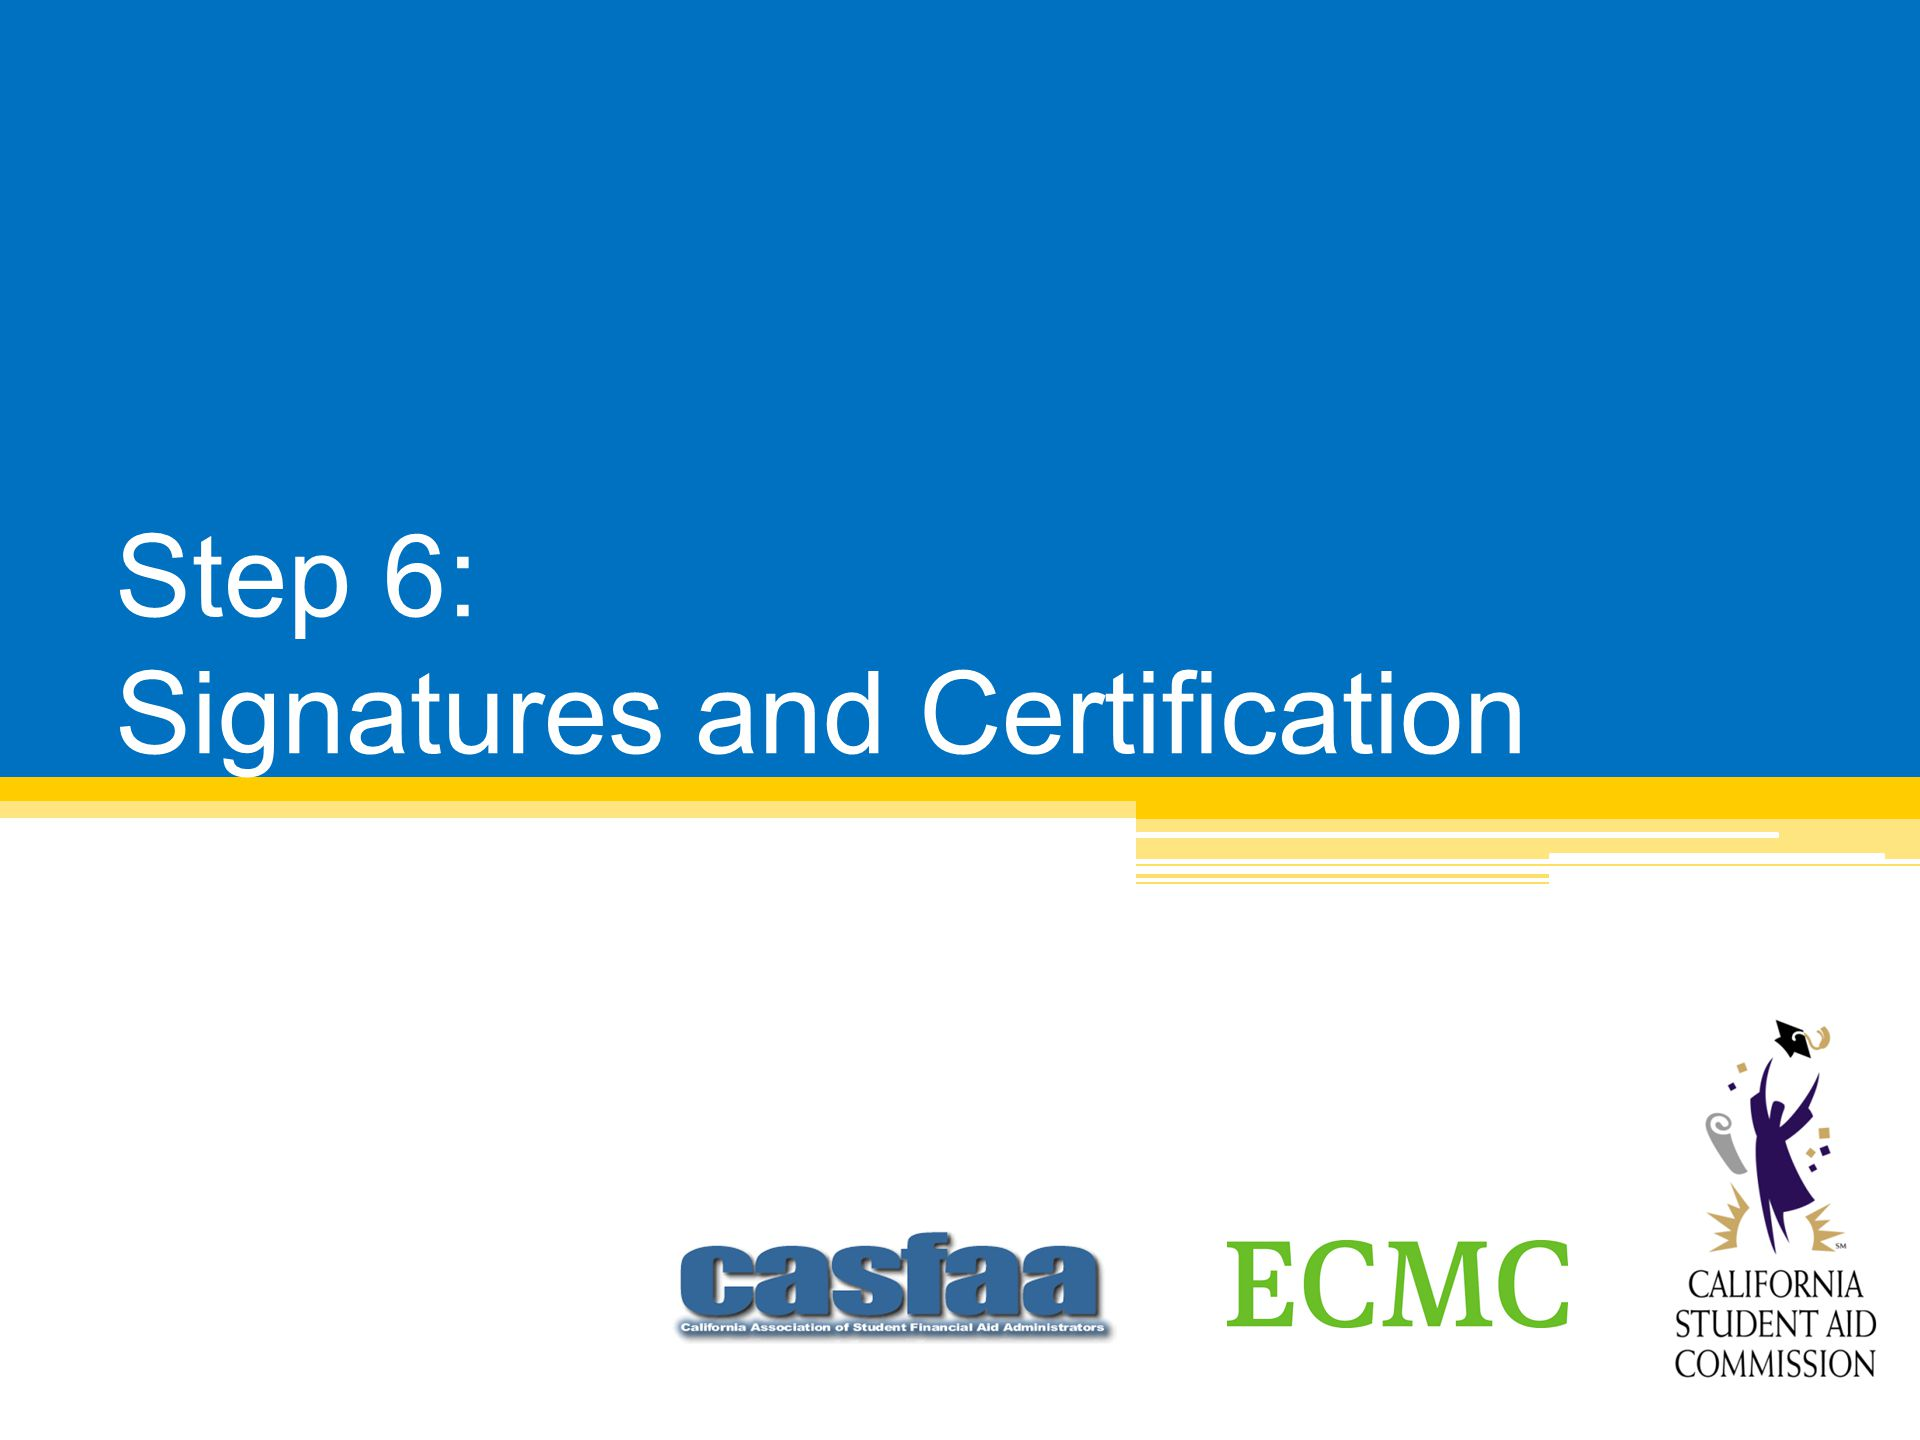 Step 6: Signatures and Certification